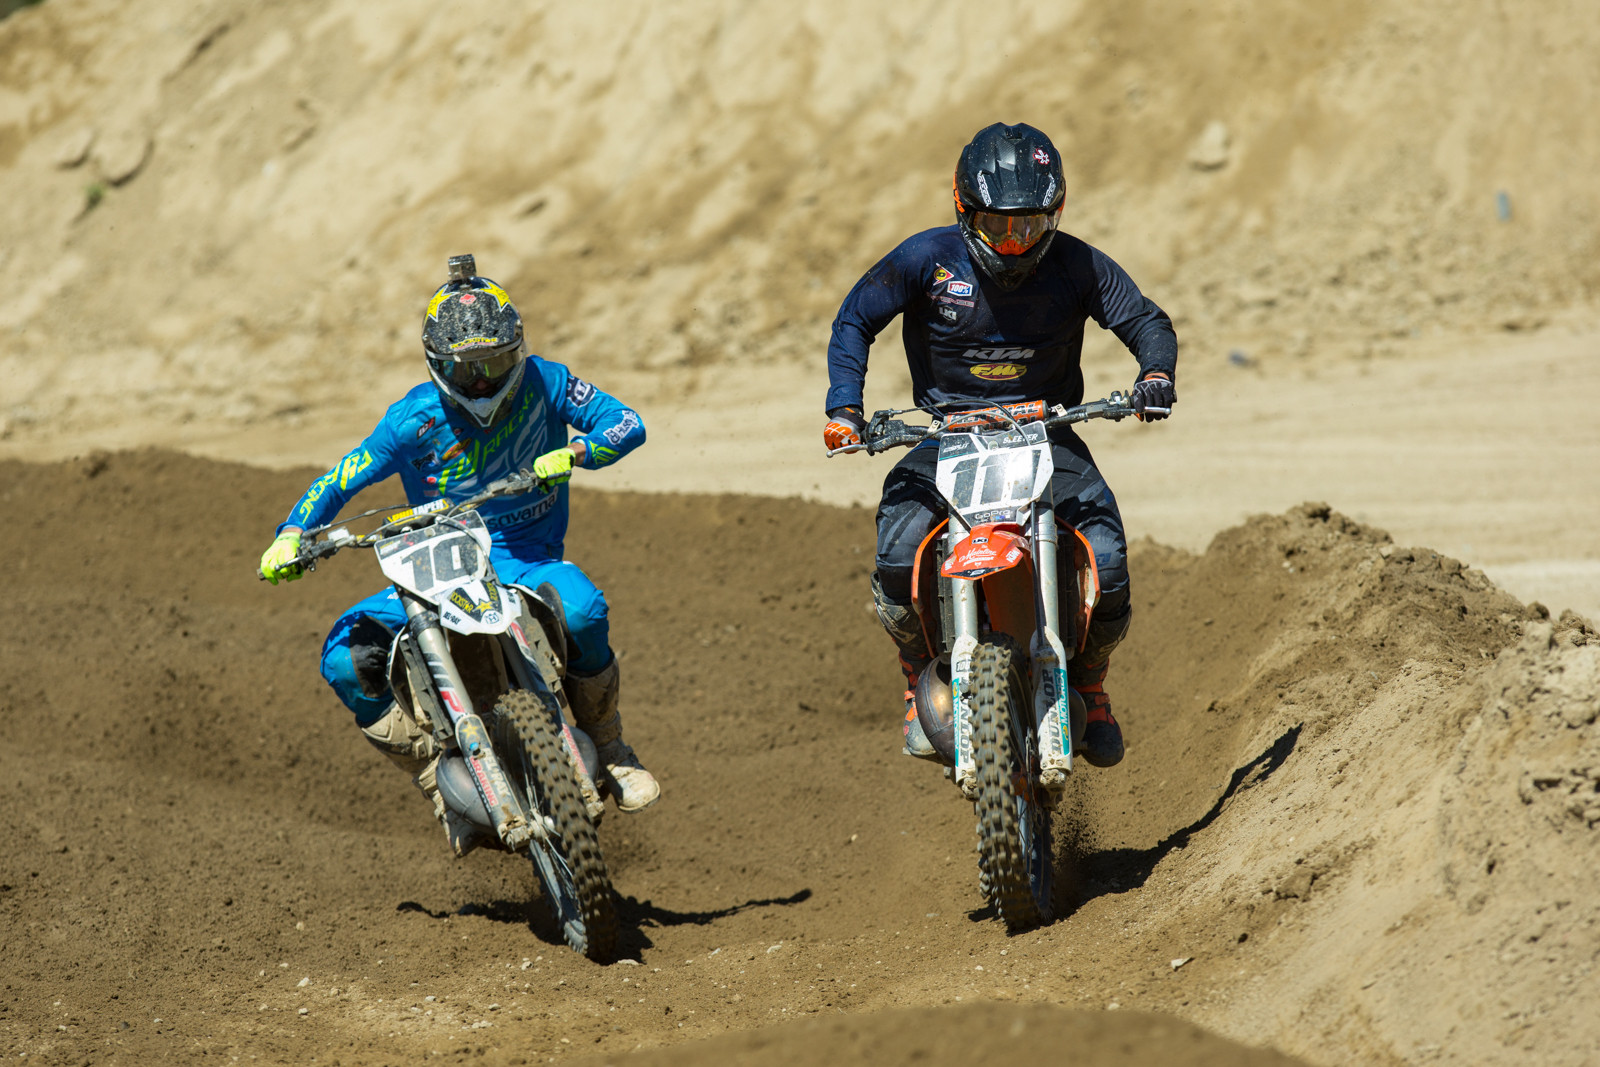 Mike Sleeter and Colton Haaker - 2016 MTA World Two-Stroke Nationals - Motocross Pictures - Vital MX